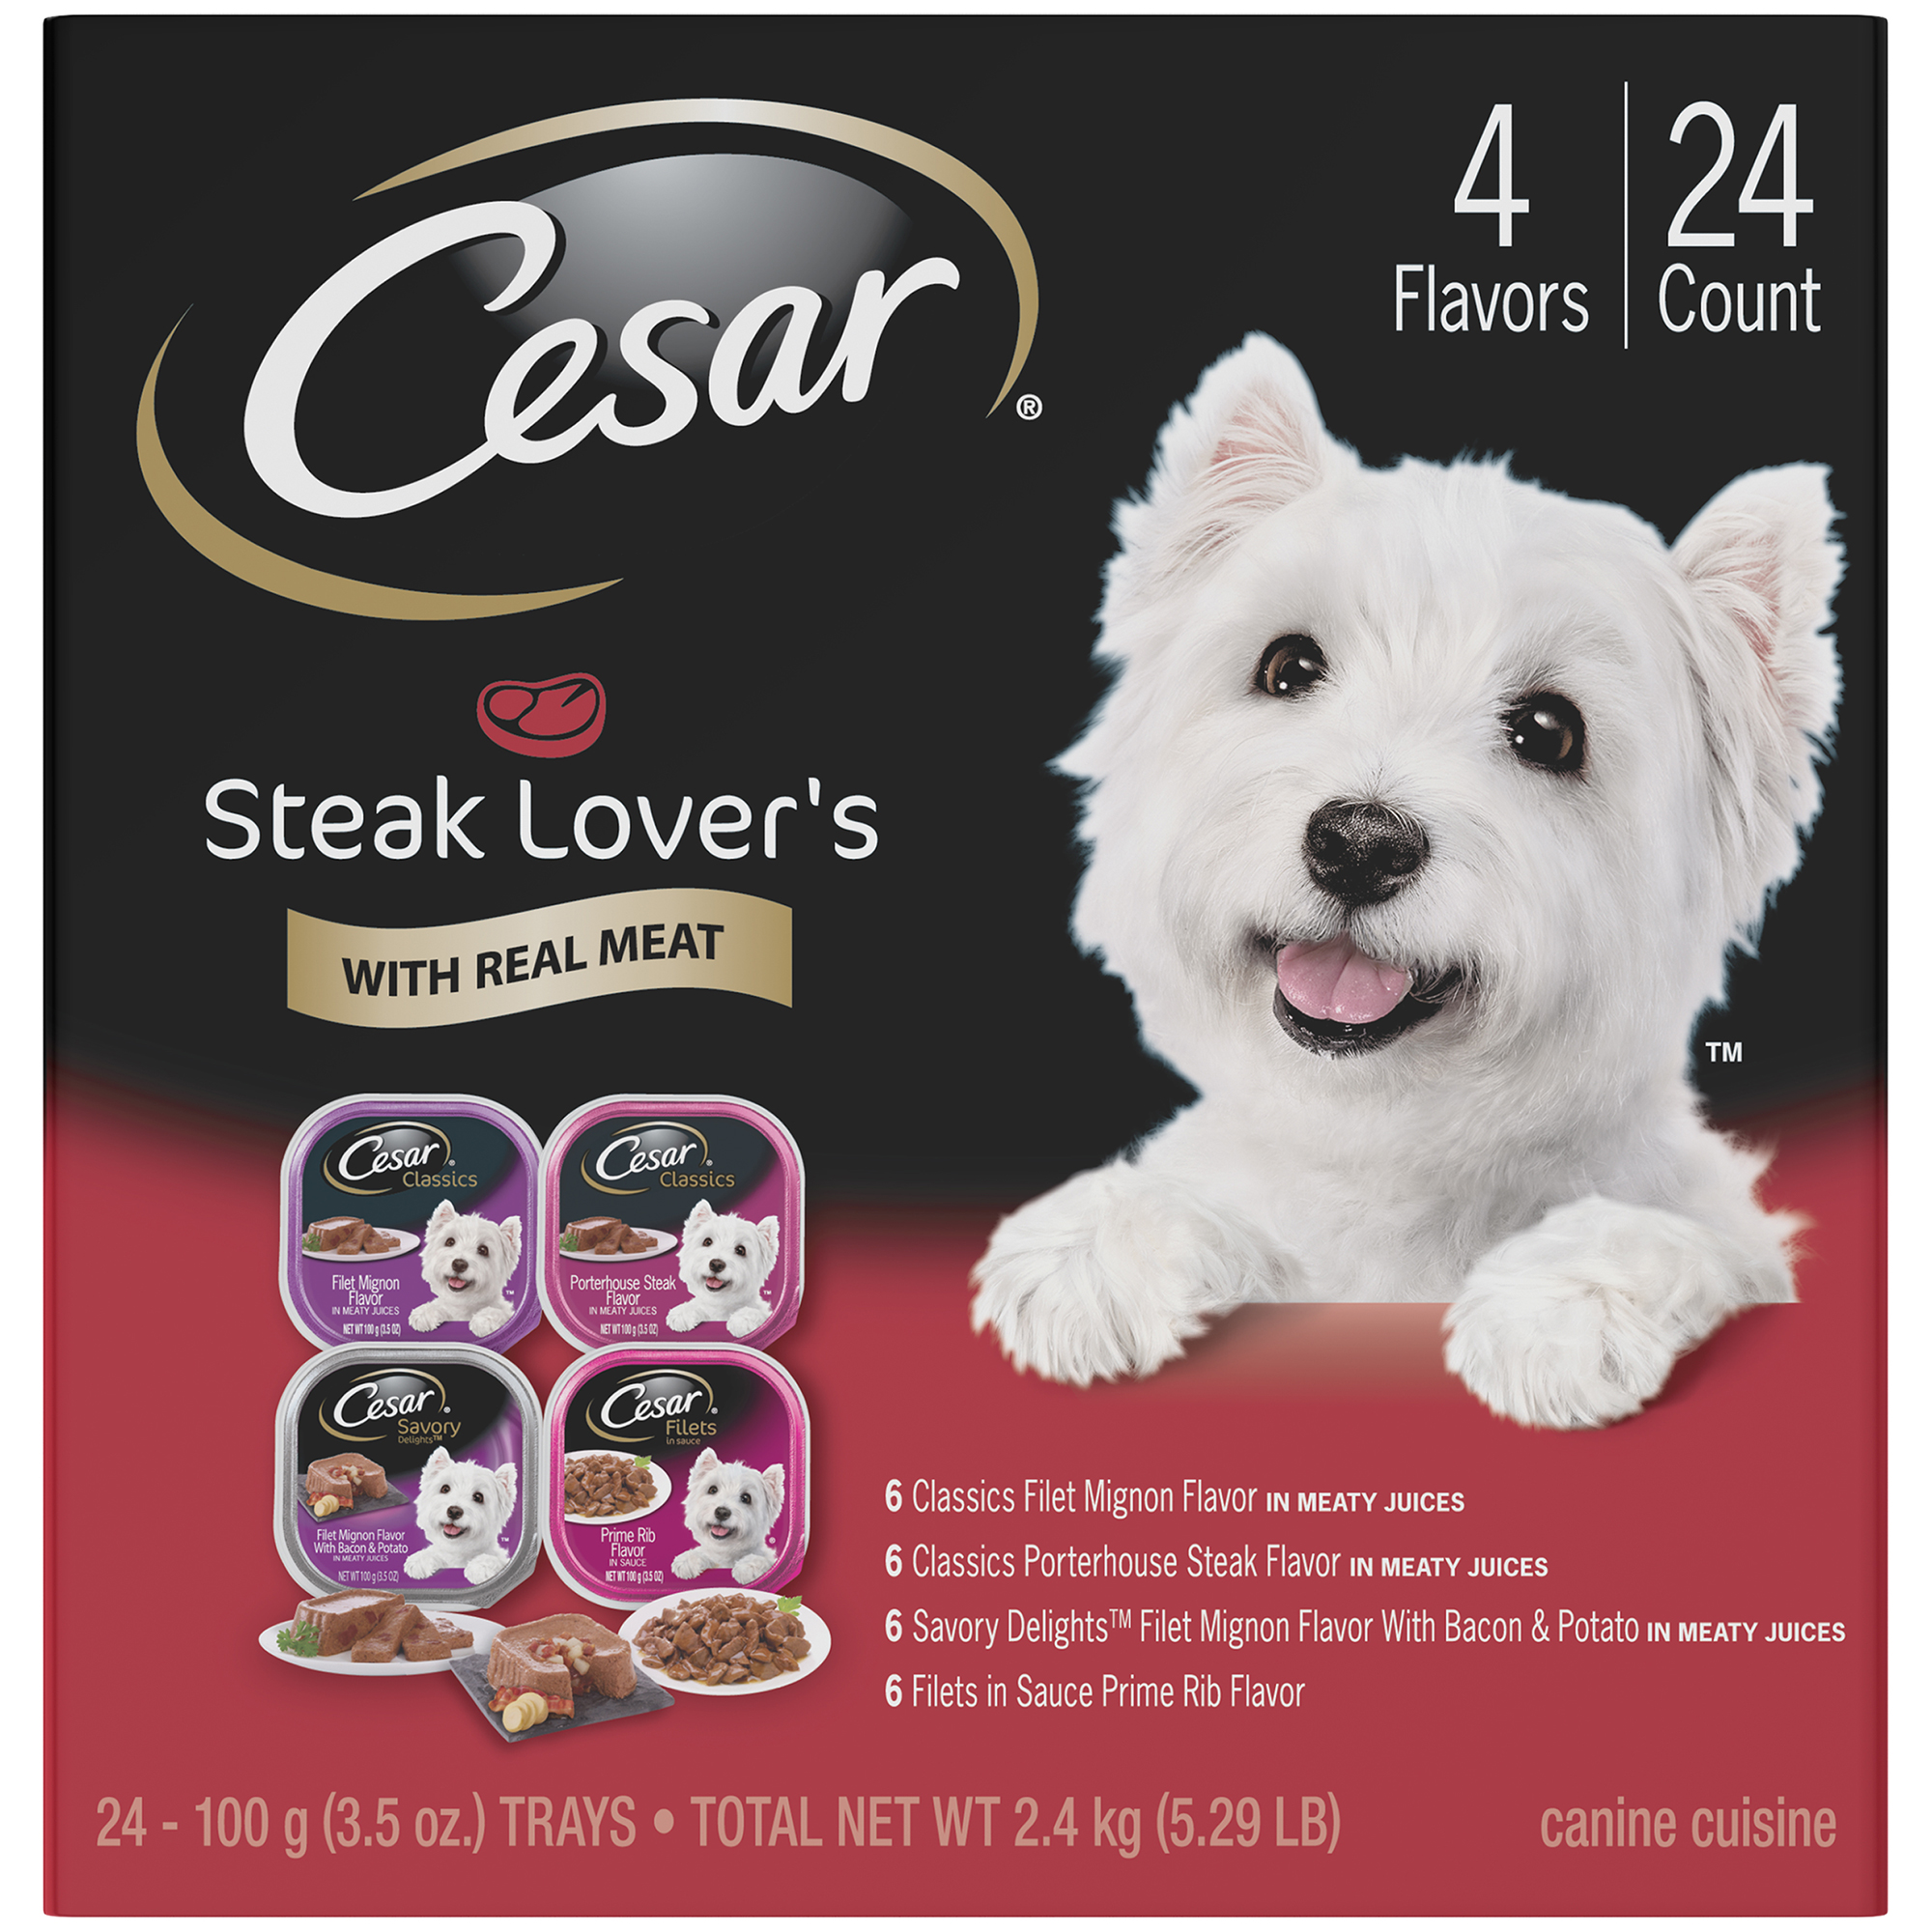 CESAR Adult Wet Dog Food Steak Lover's Variety Pack, (24) 3.5 oz. Trays